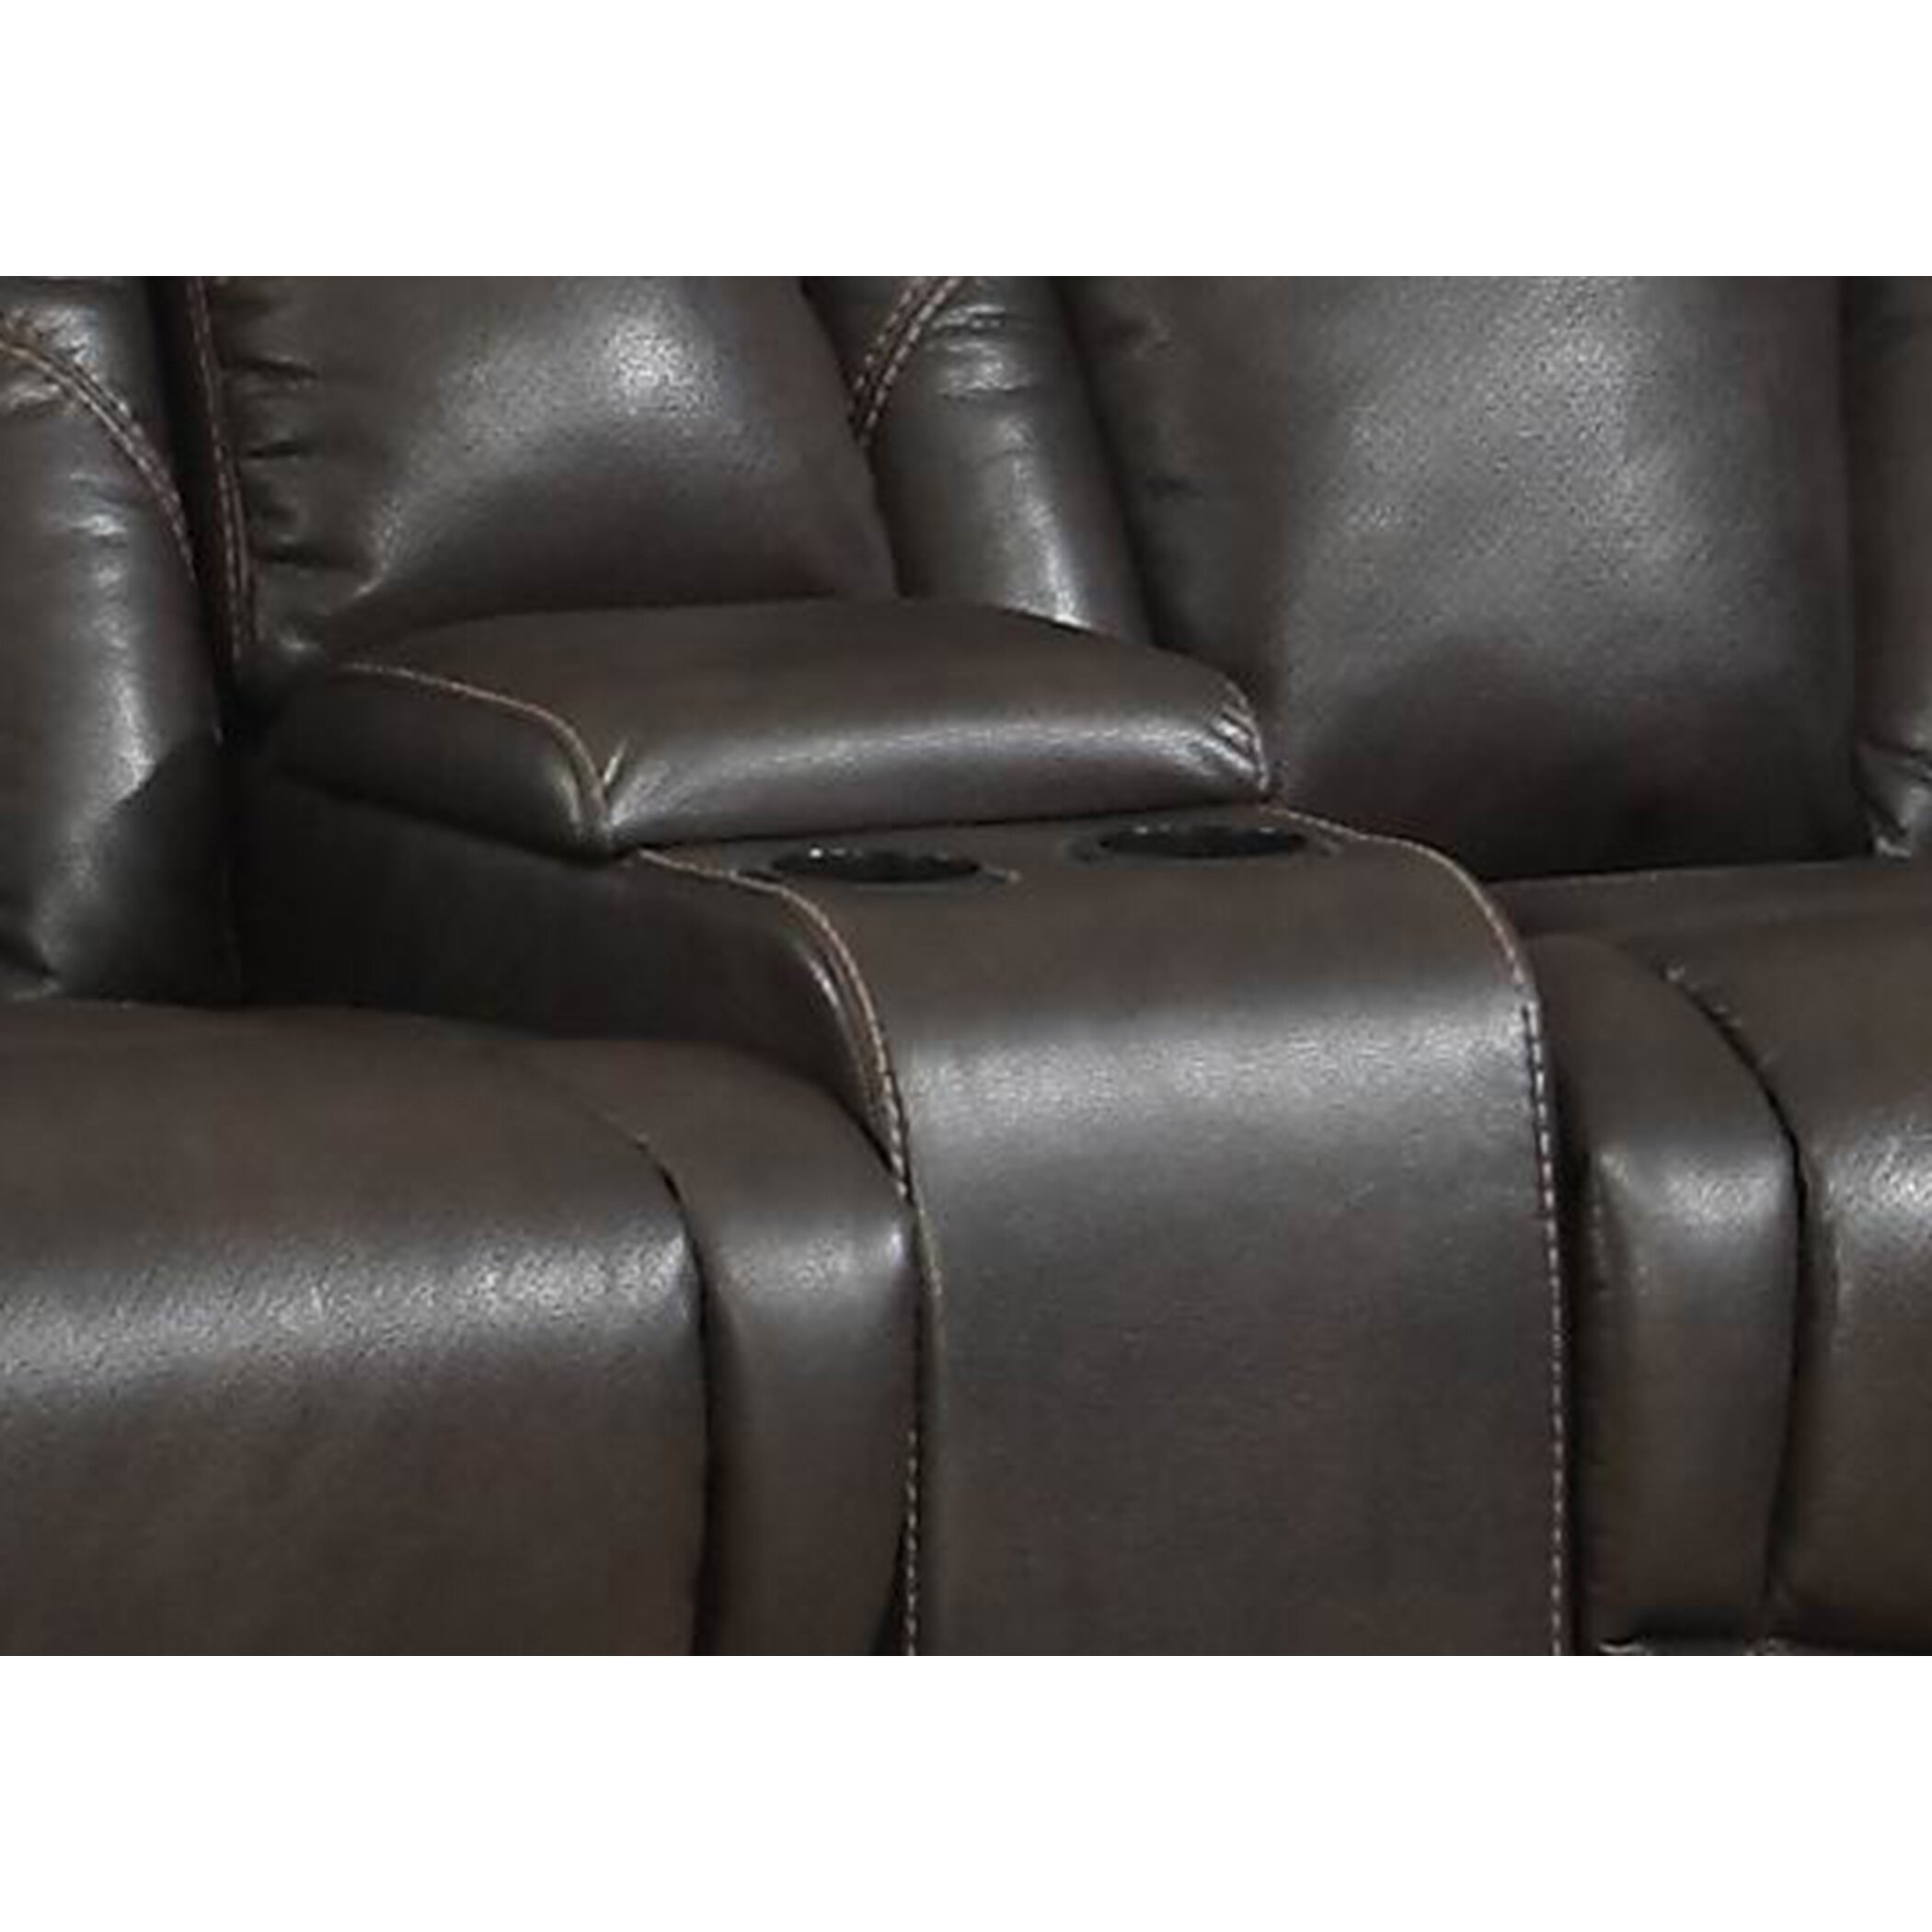 Ac pacific otto transitional reclining loveseat with storage console and cup holders reviews Loveseat with cup holders